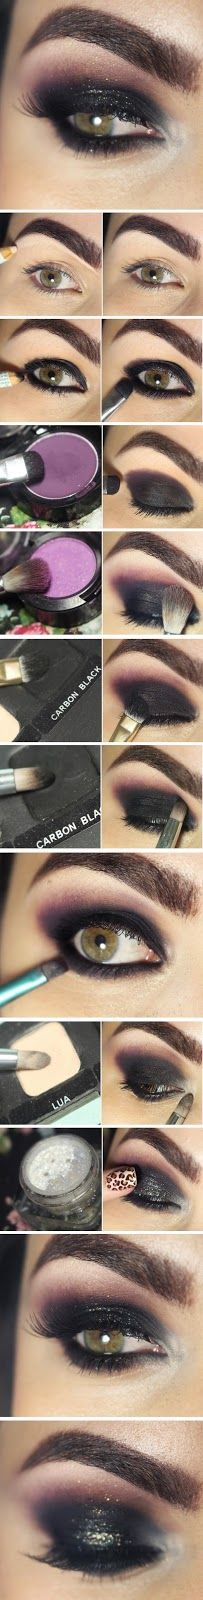 Smokey Black Eye with Gltter and Purple Makeup Tutorials Step by Step / Best LoLus Makeup Fashion